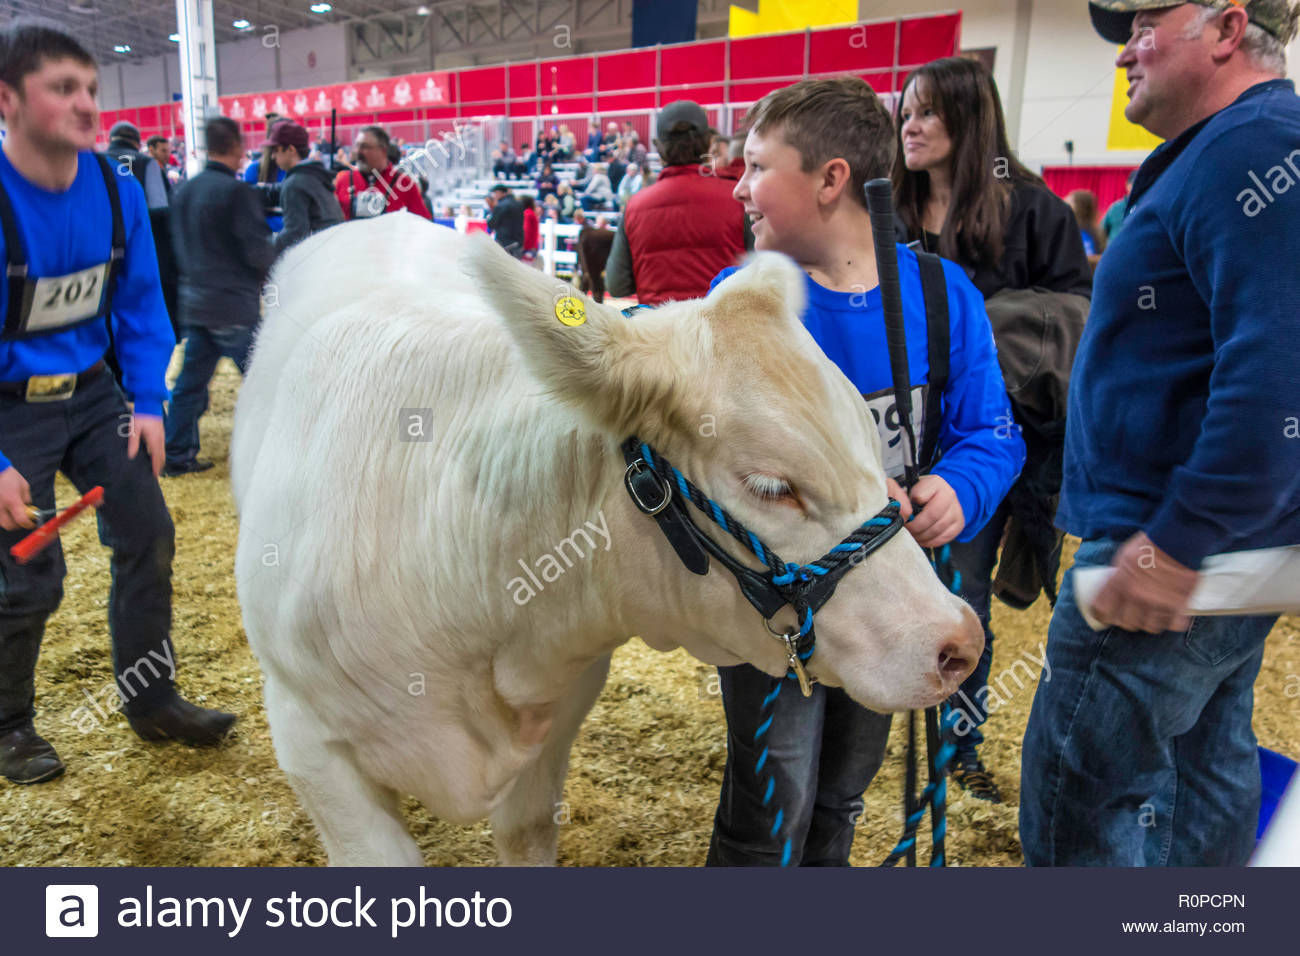 Beef cattle competition at the Royal Agricultural Winter Fair in Toronto Ontario Canada.Stock Photo